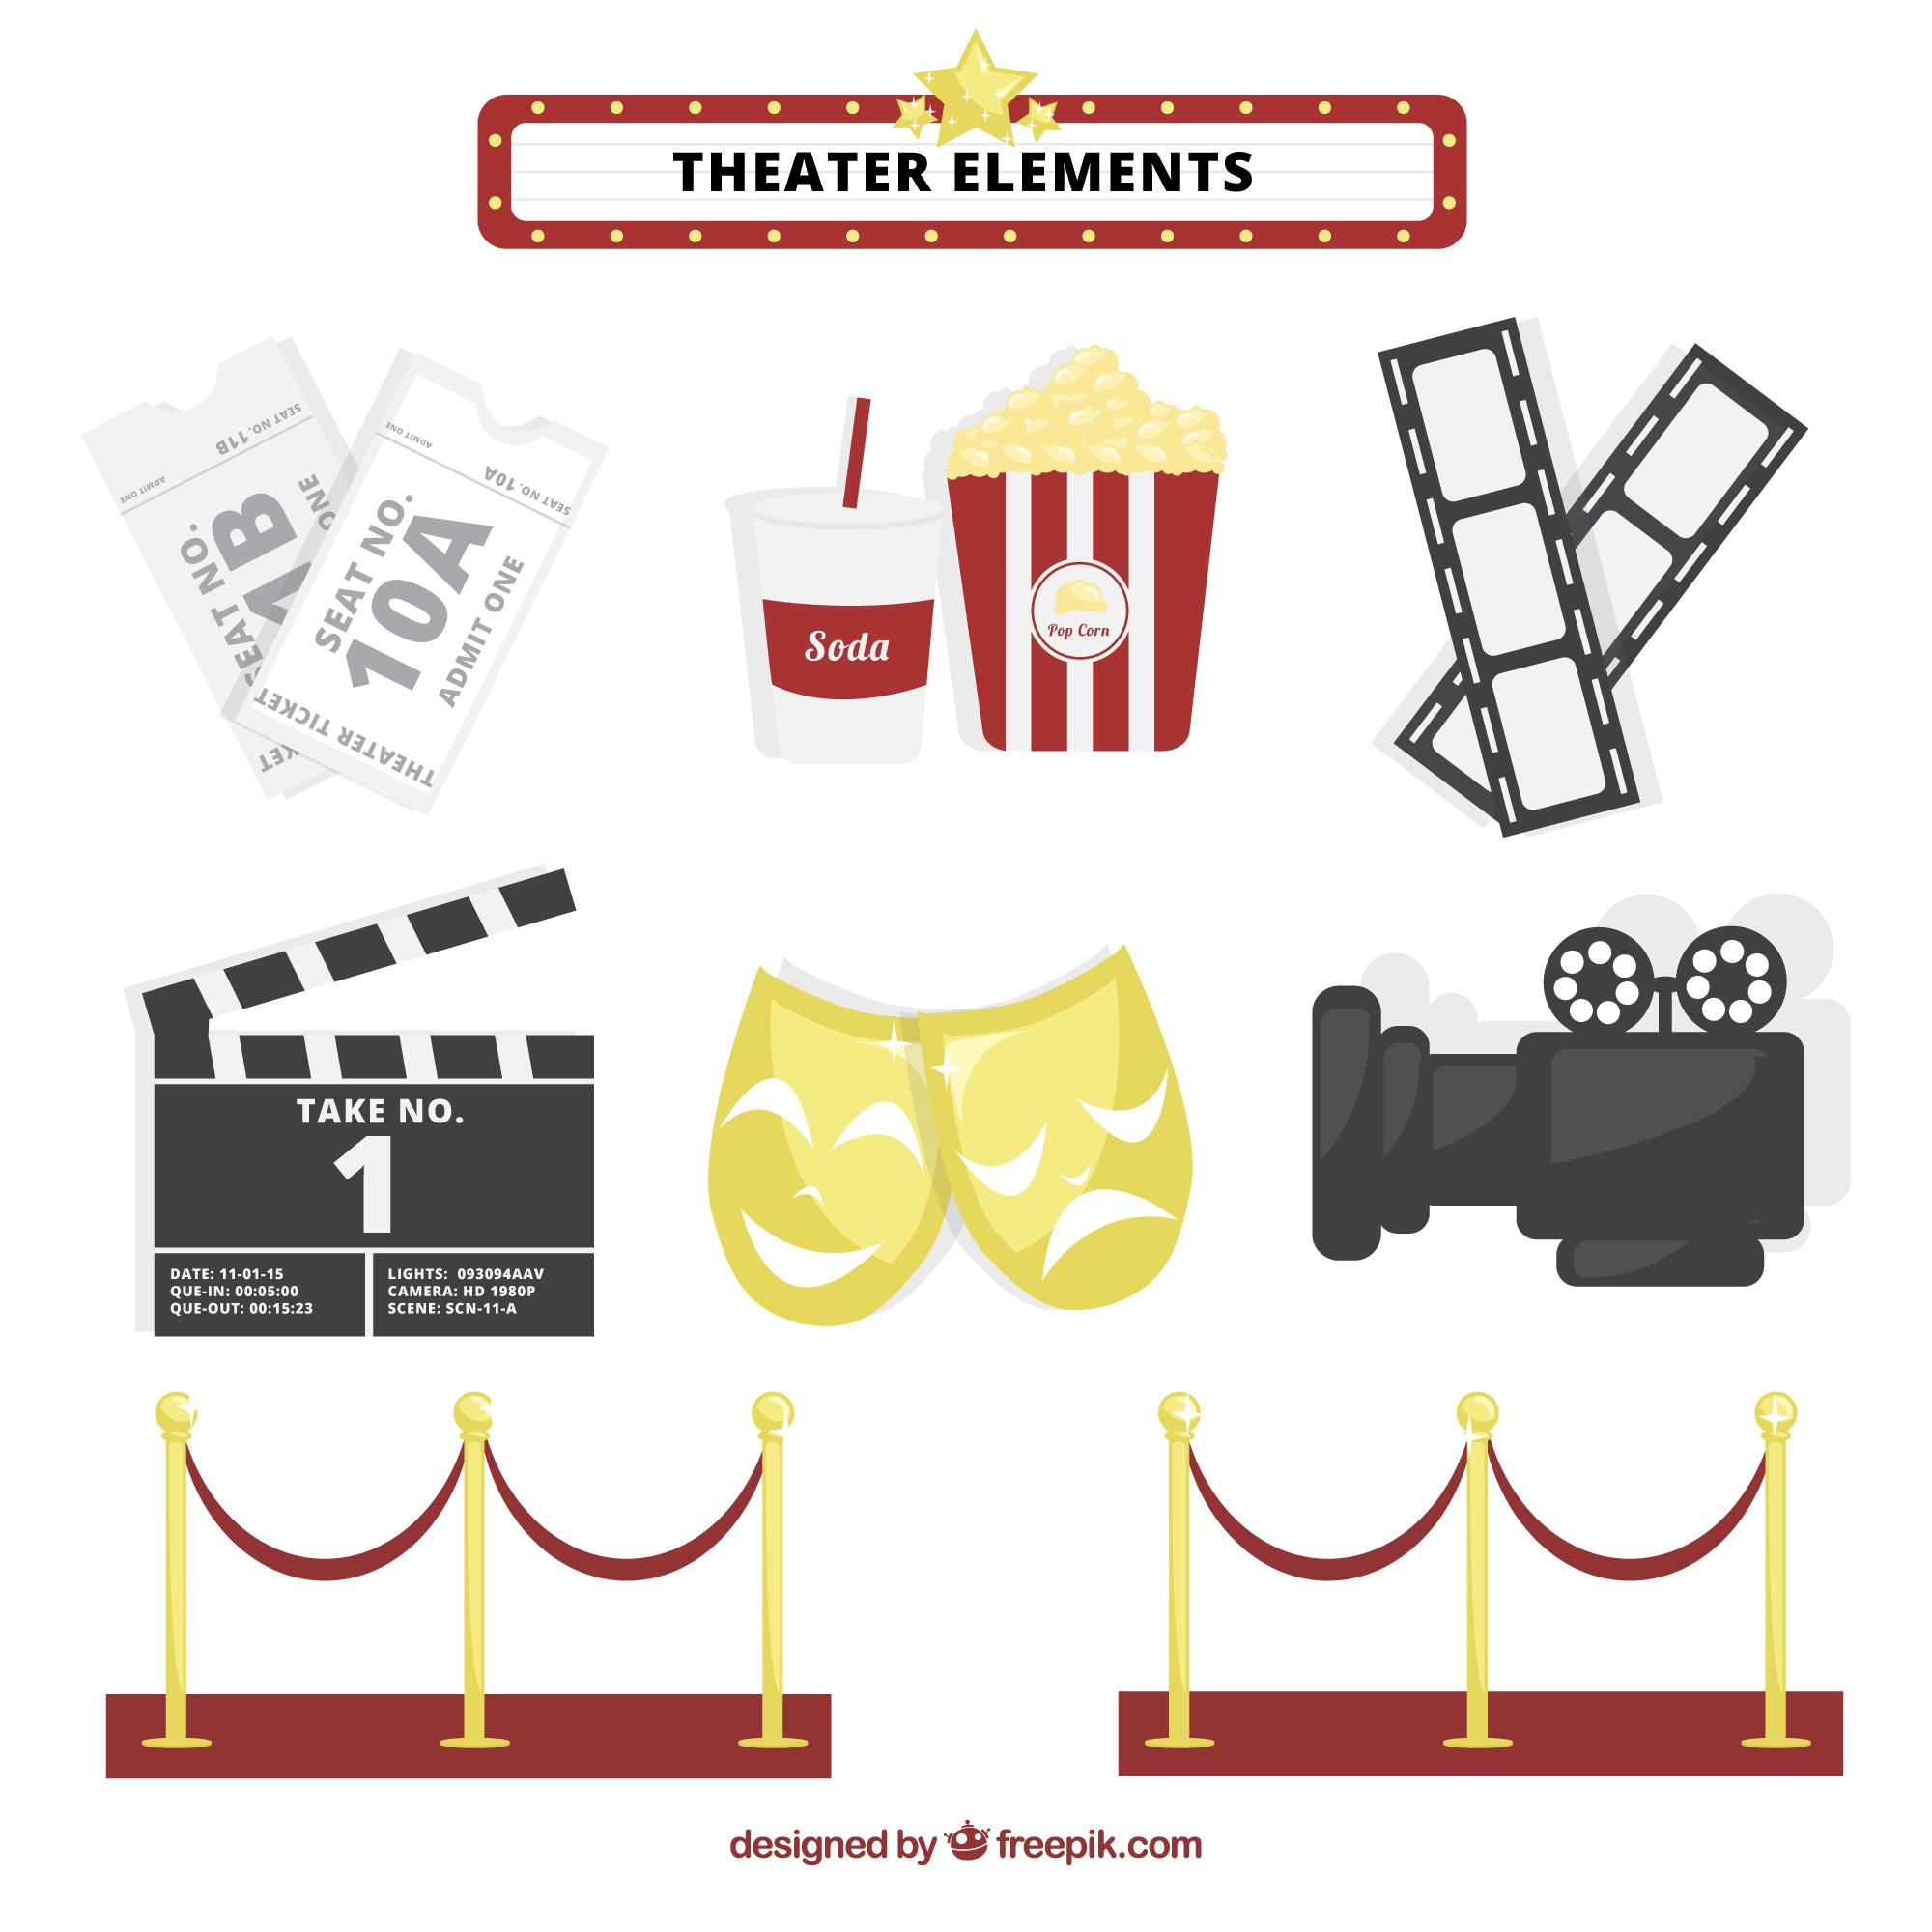 Fantastic theater elements collection